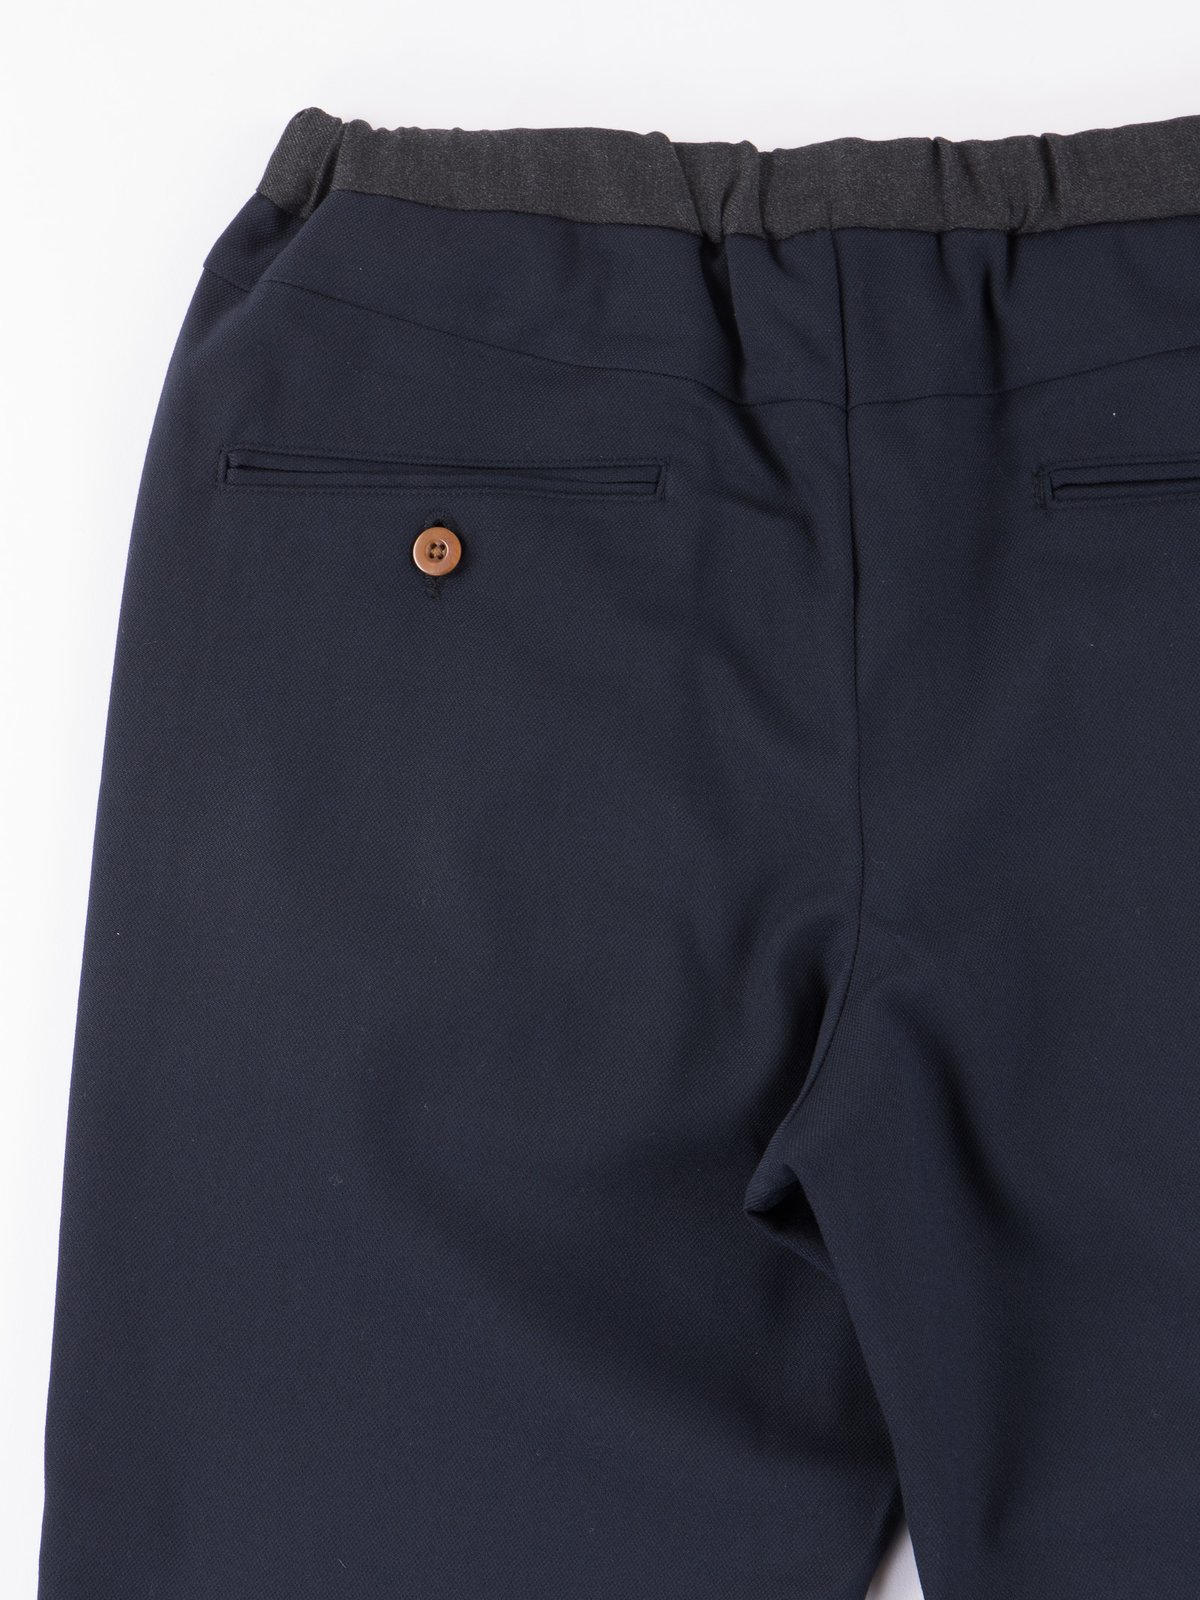 Dark Navy Slim Easy Slacks - Image 3